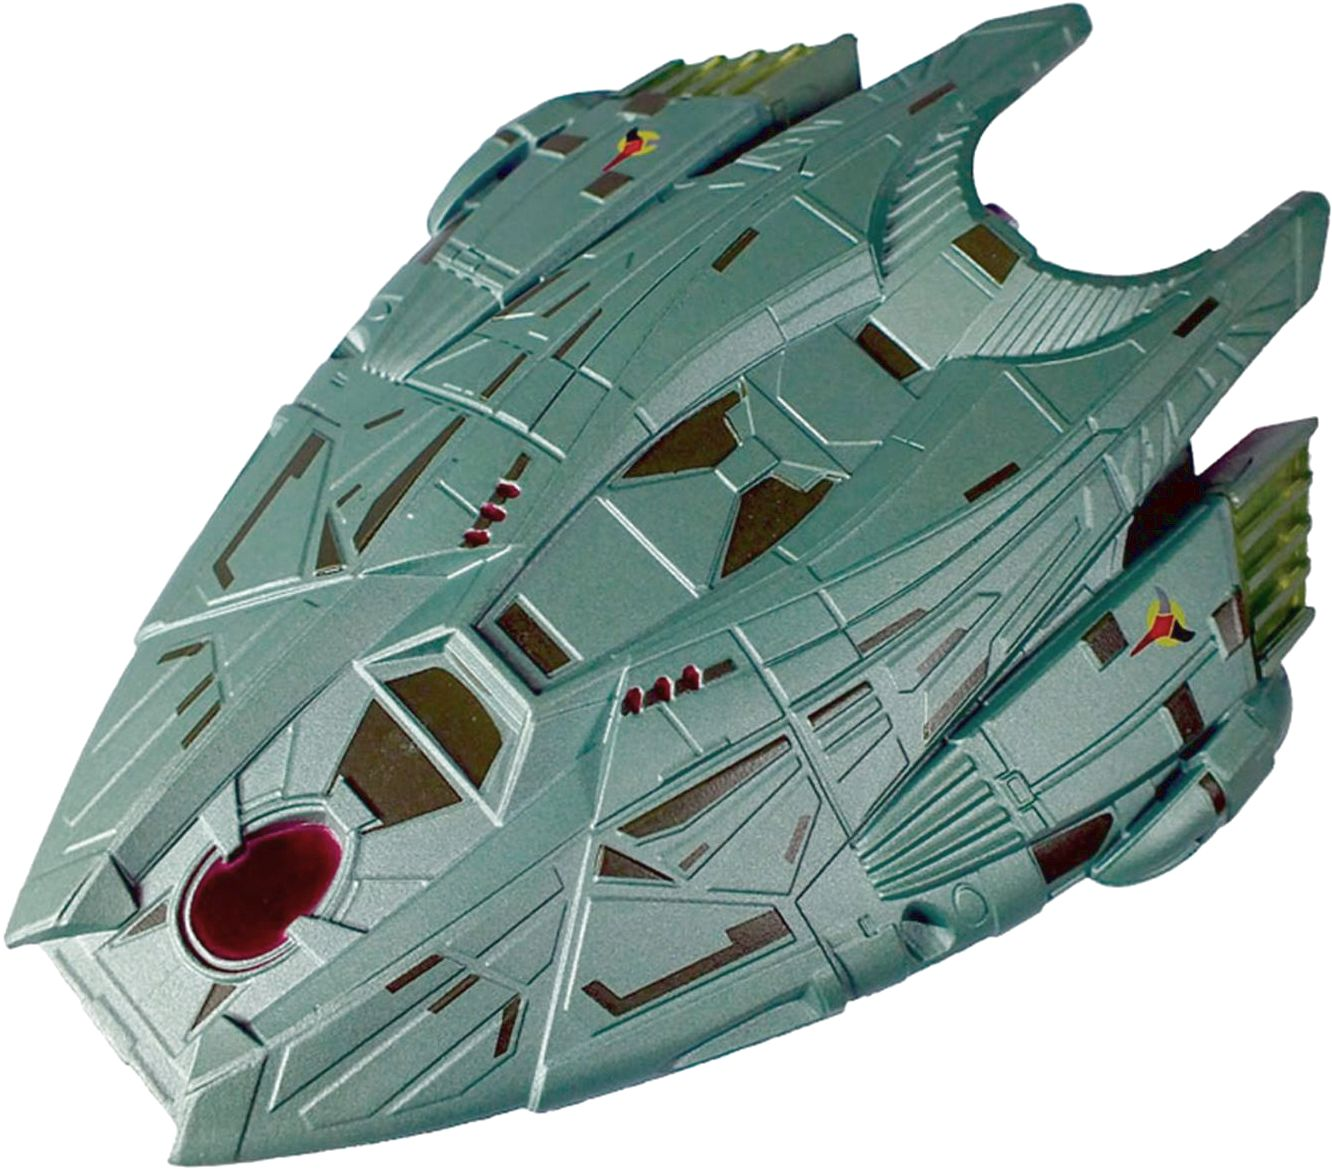 EM-ST0071 KLINGON TRANSPORT GOROTHS SHIP